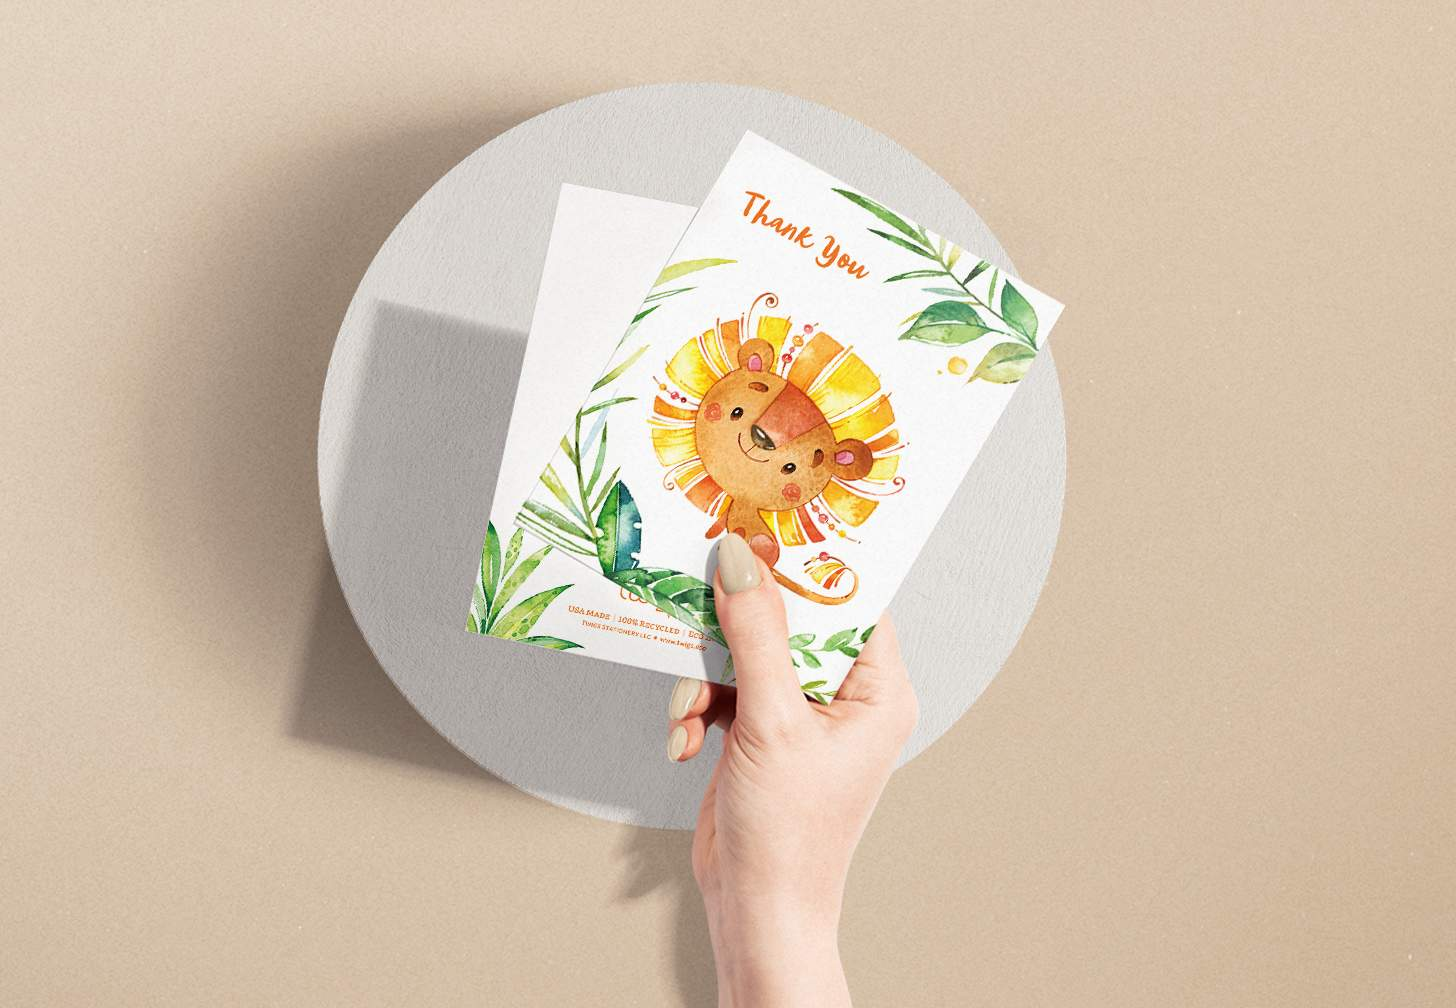 Woman's hand holding card with a cute orange and yellow lion and plants design with a white envelope